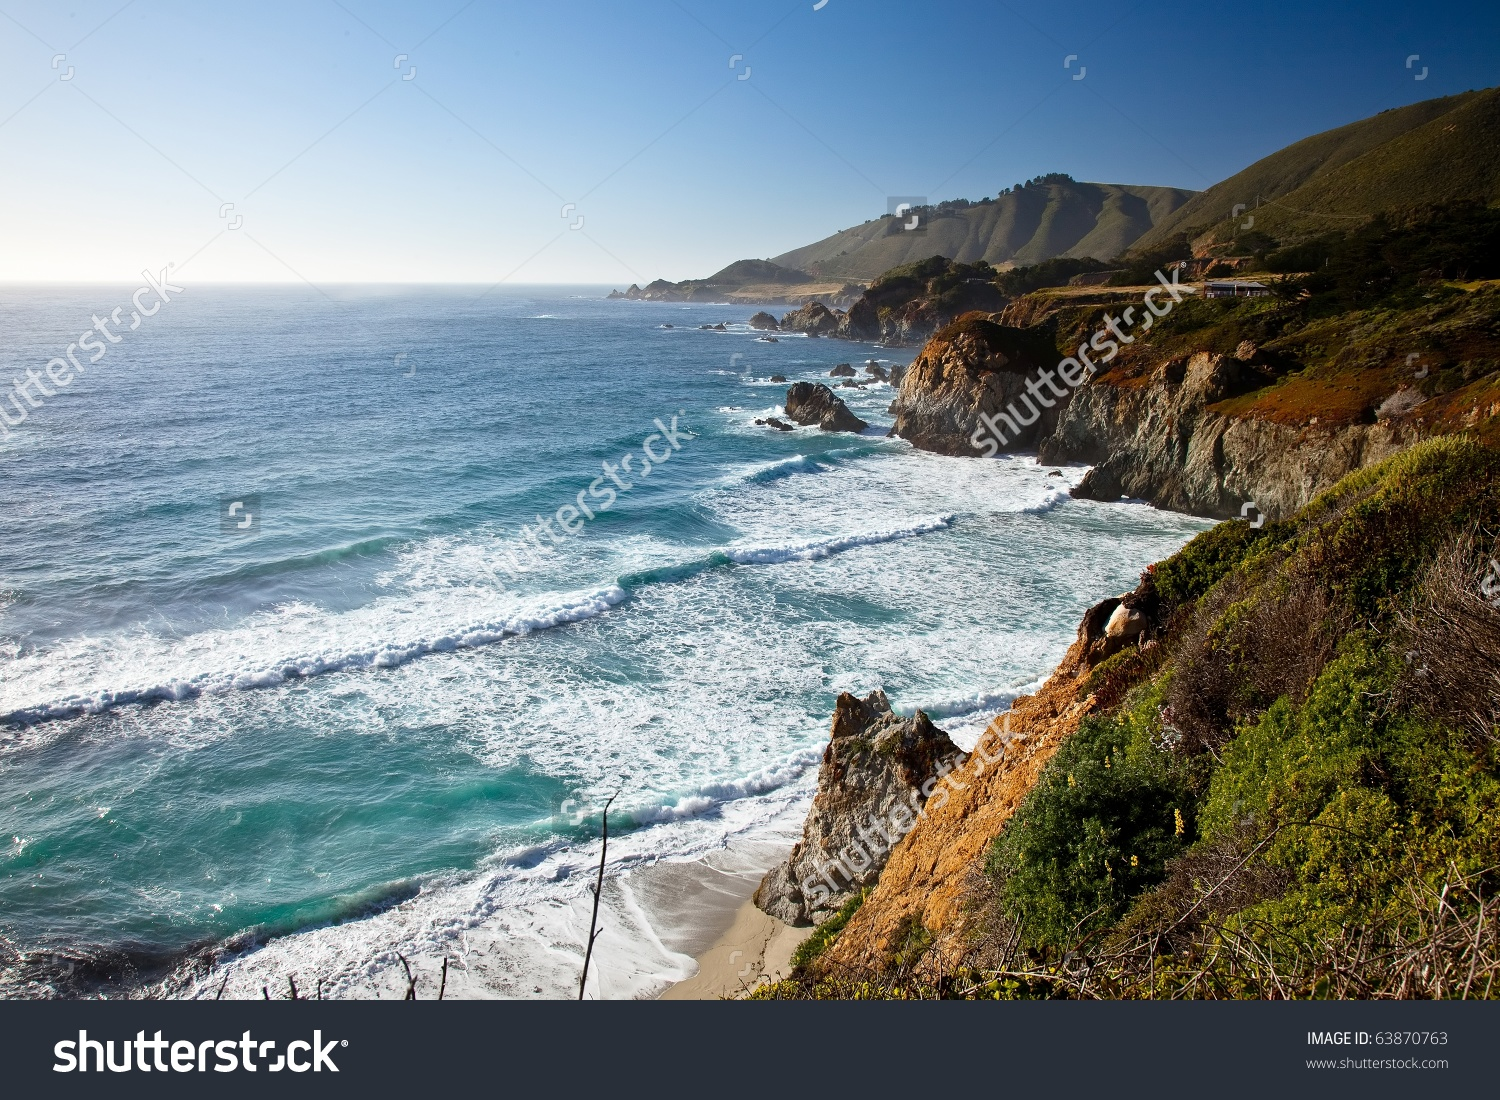 Big Sur Is A Sparsely Populated Region Of The Central California.